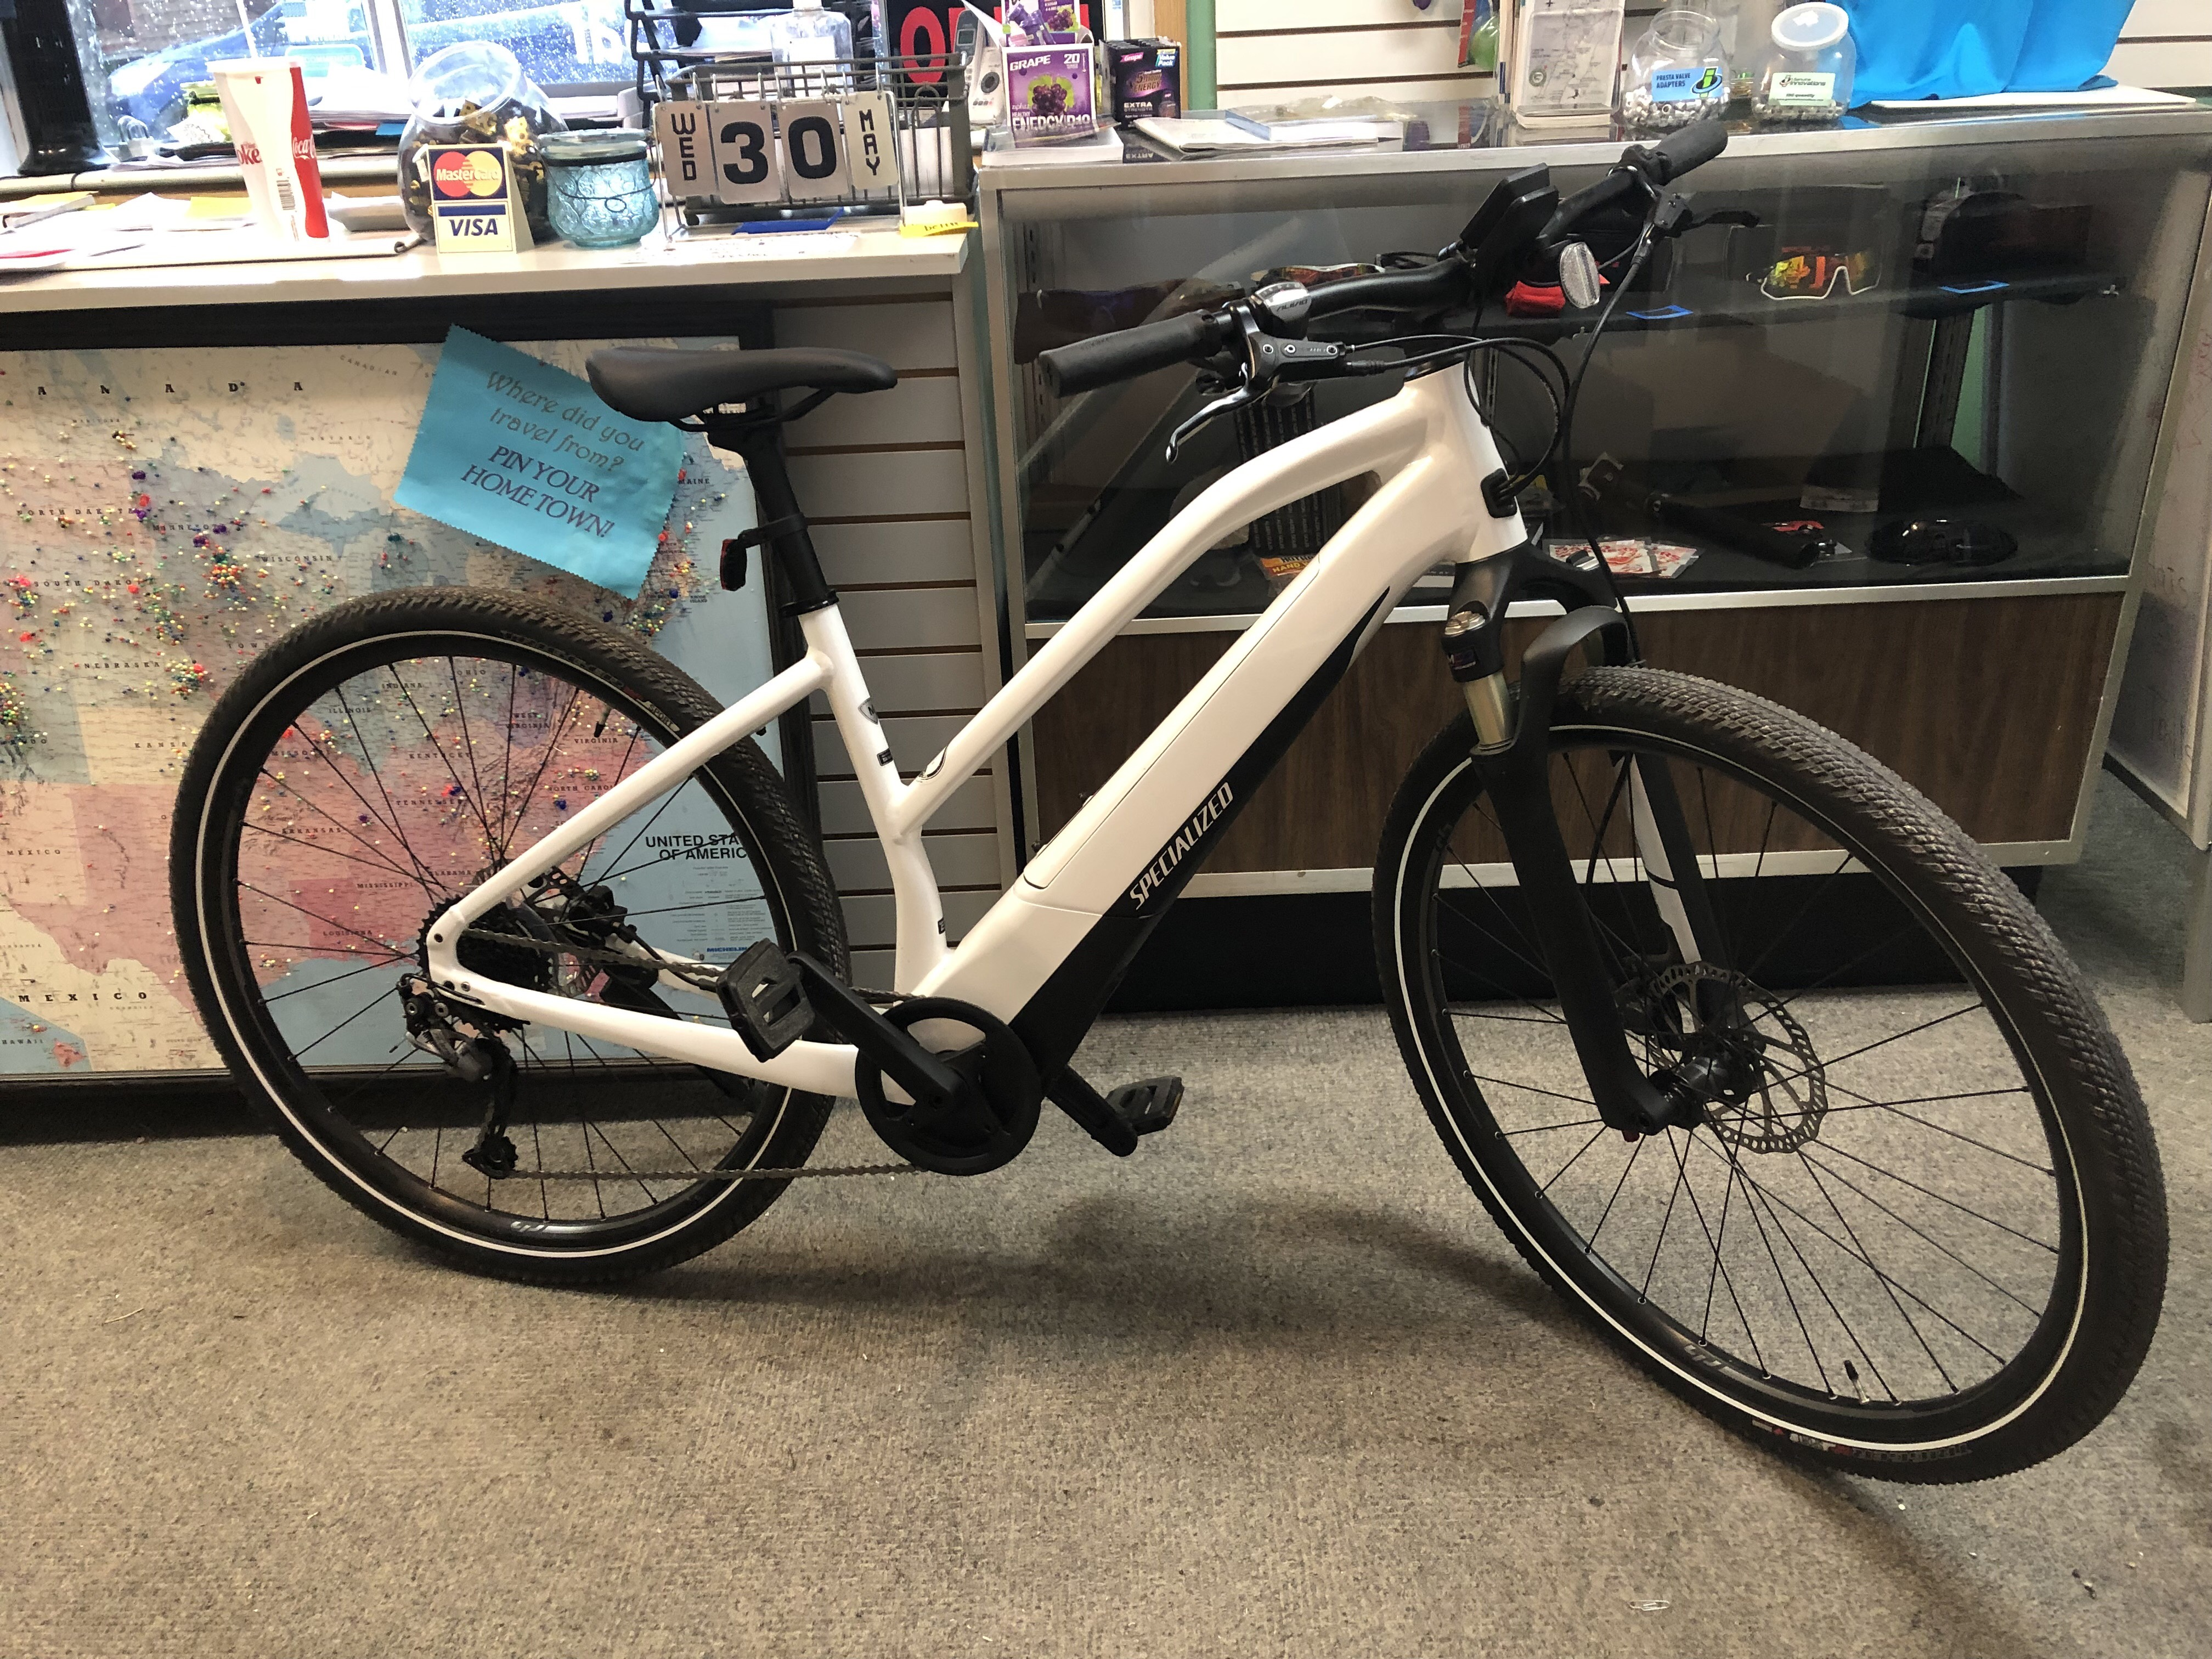 Our new Specialized Turbo E-Bikes will give you near superhuman power while you cruise down the Mickelson Trail!